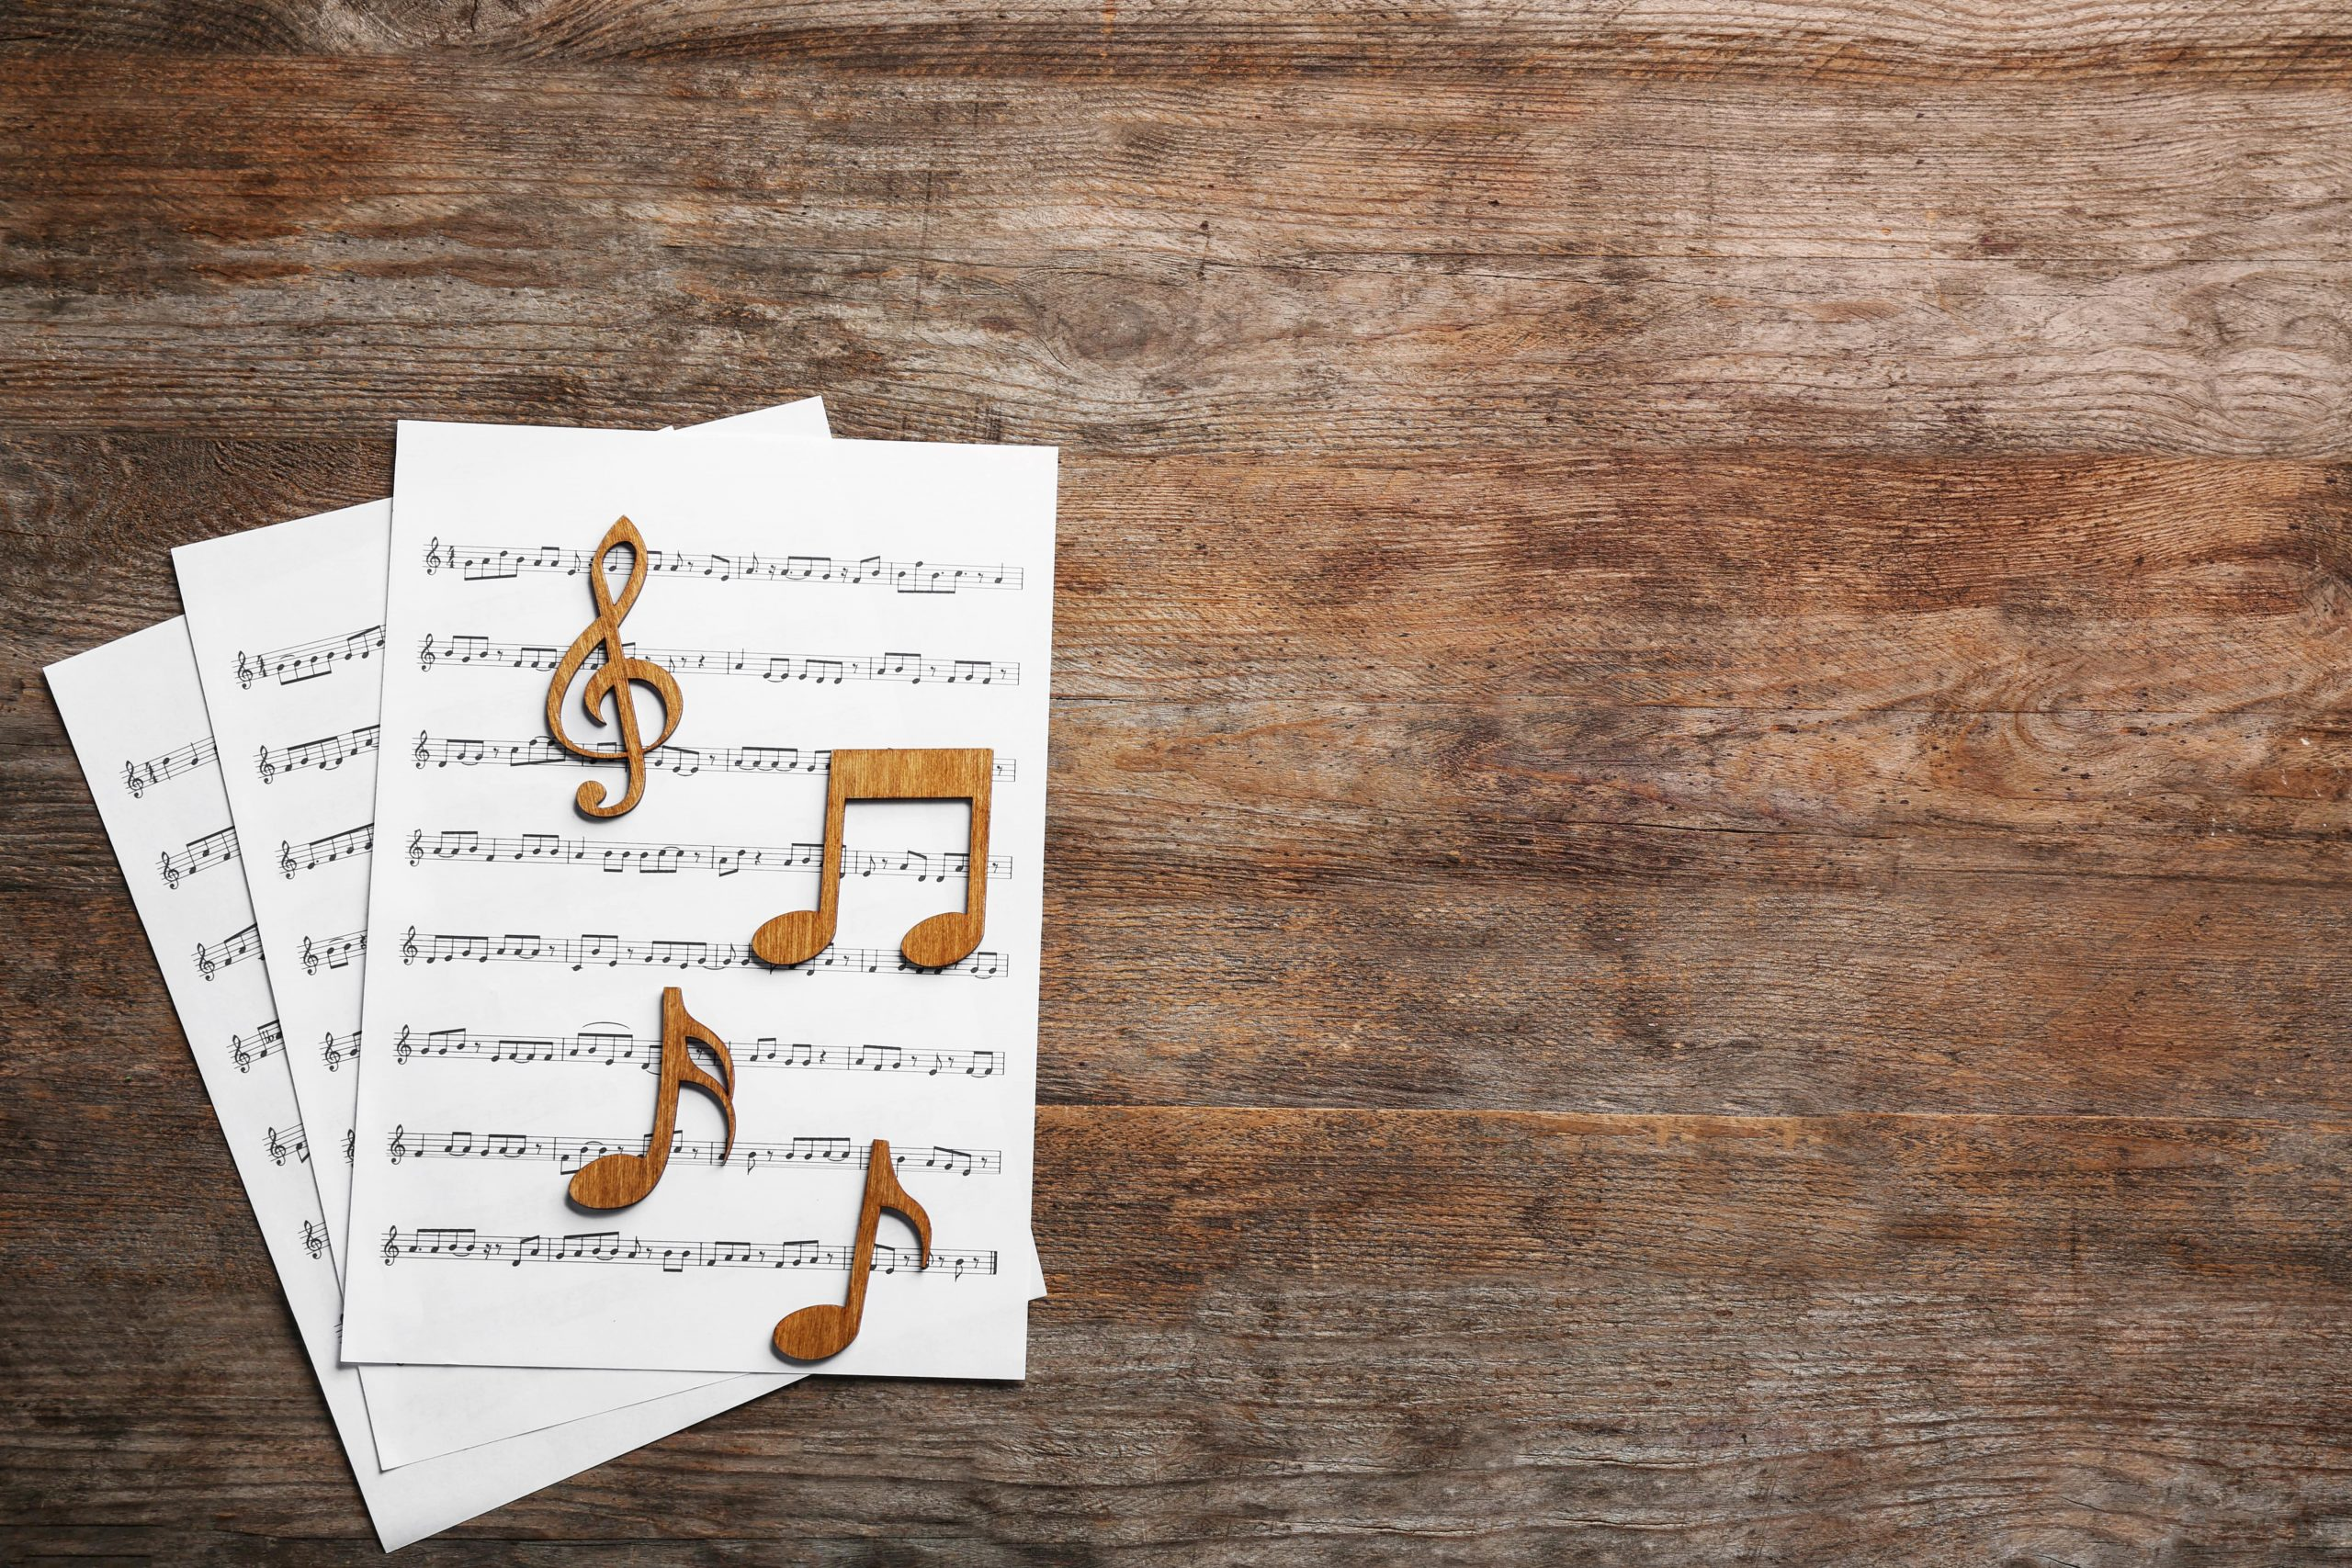 Top 10 Hymns for a Funeral or Memorial Service